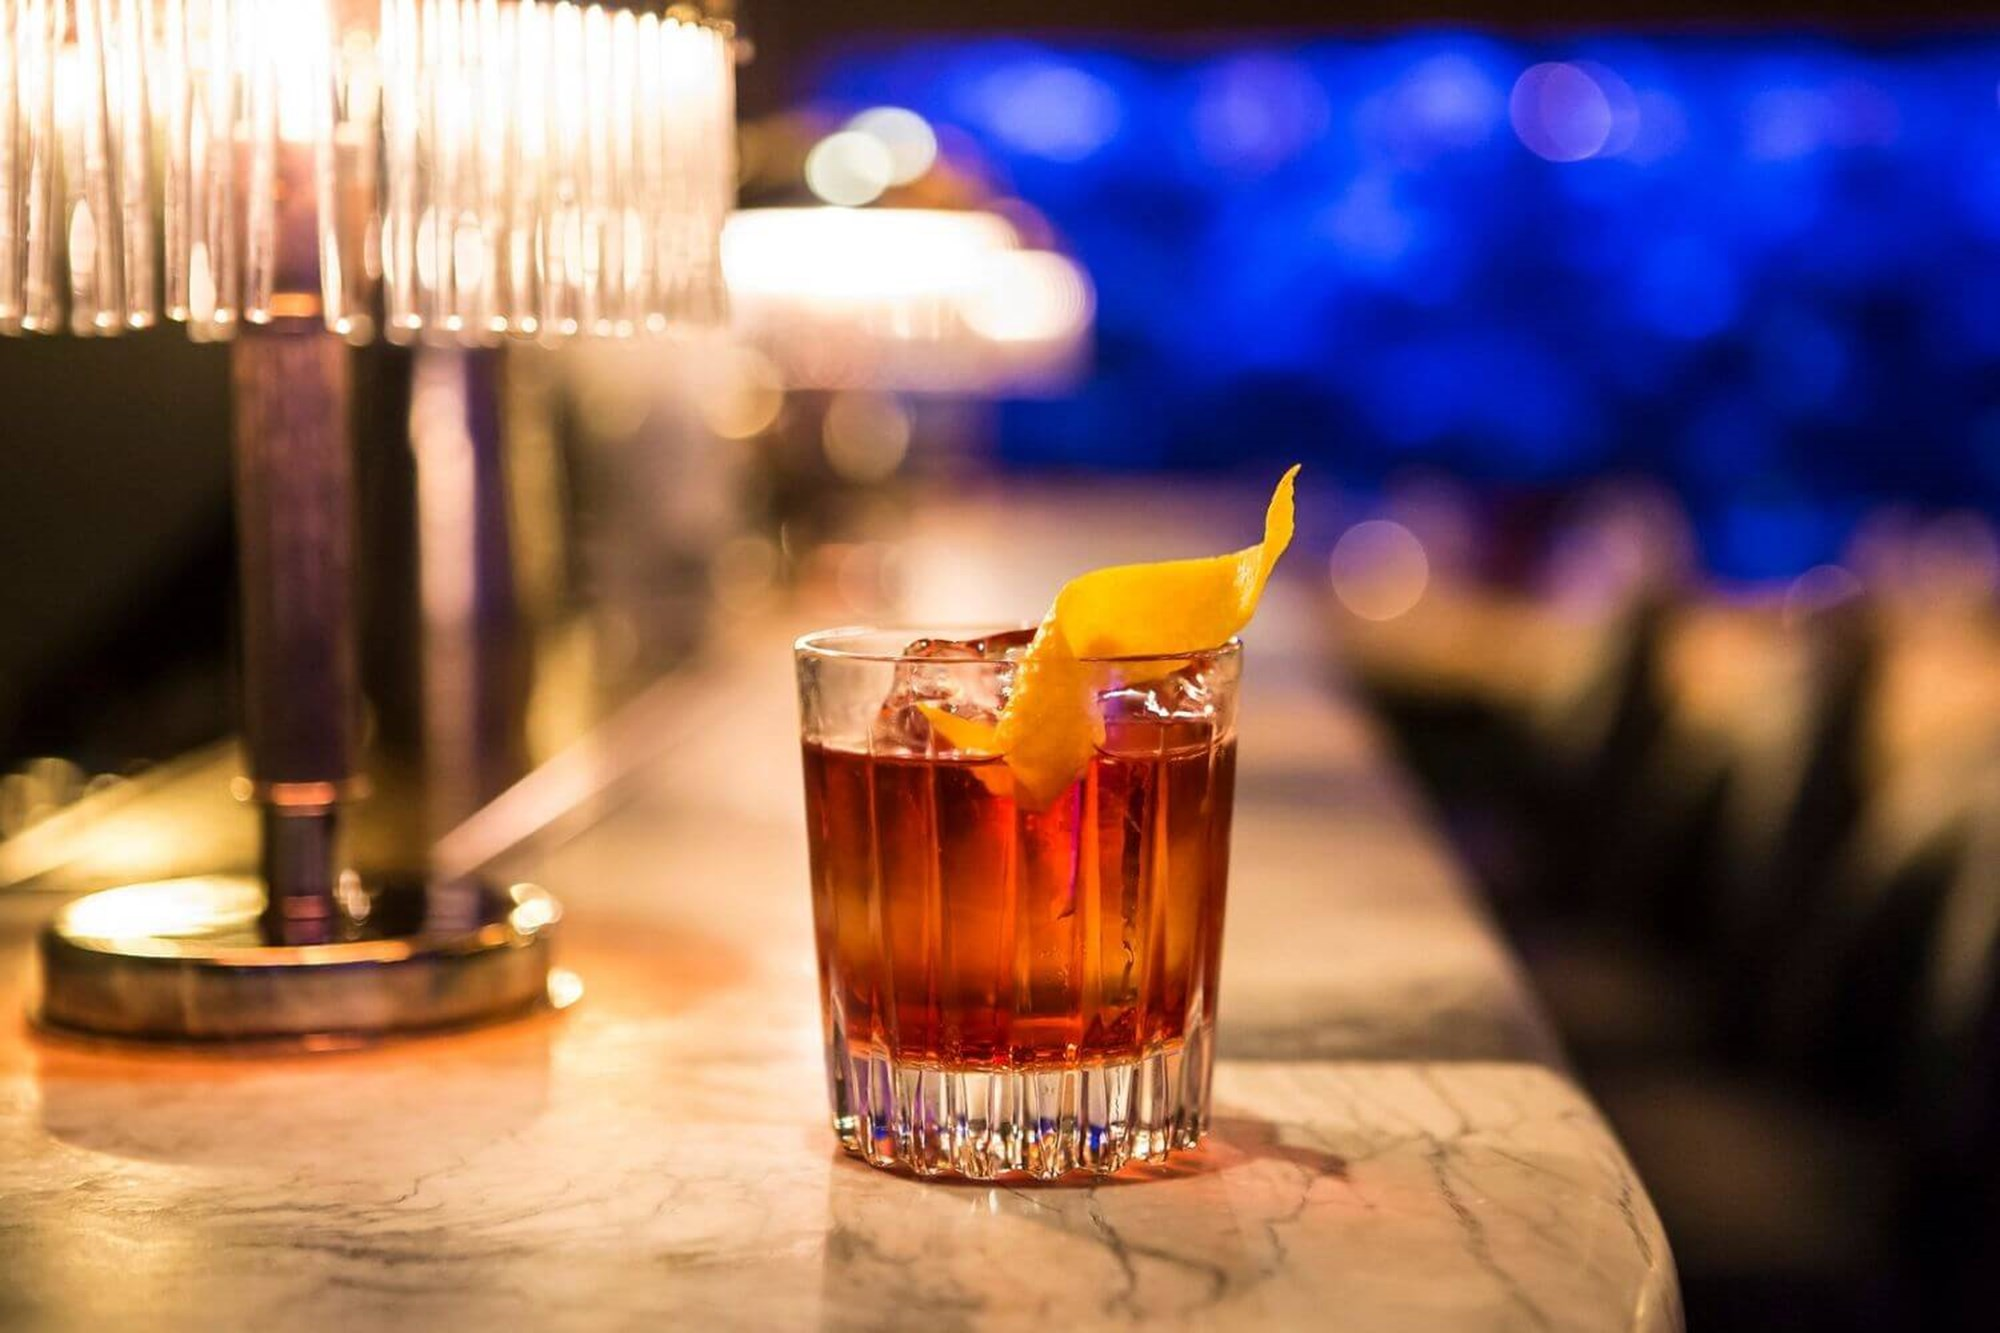 Whisky cocktail at the Sexy Fish bar in Mayfair